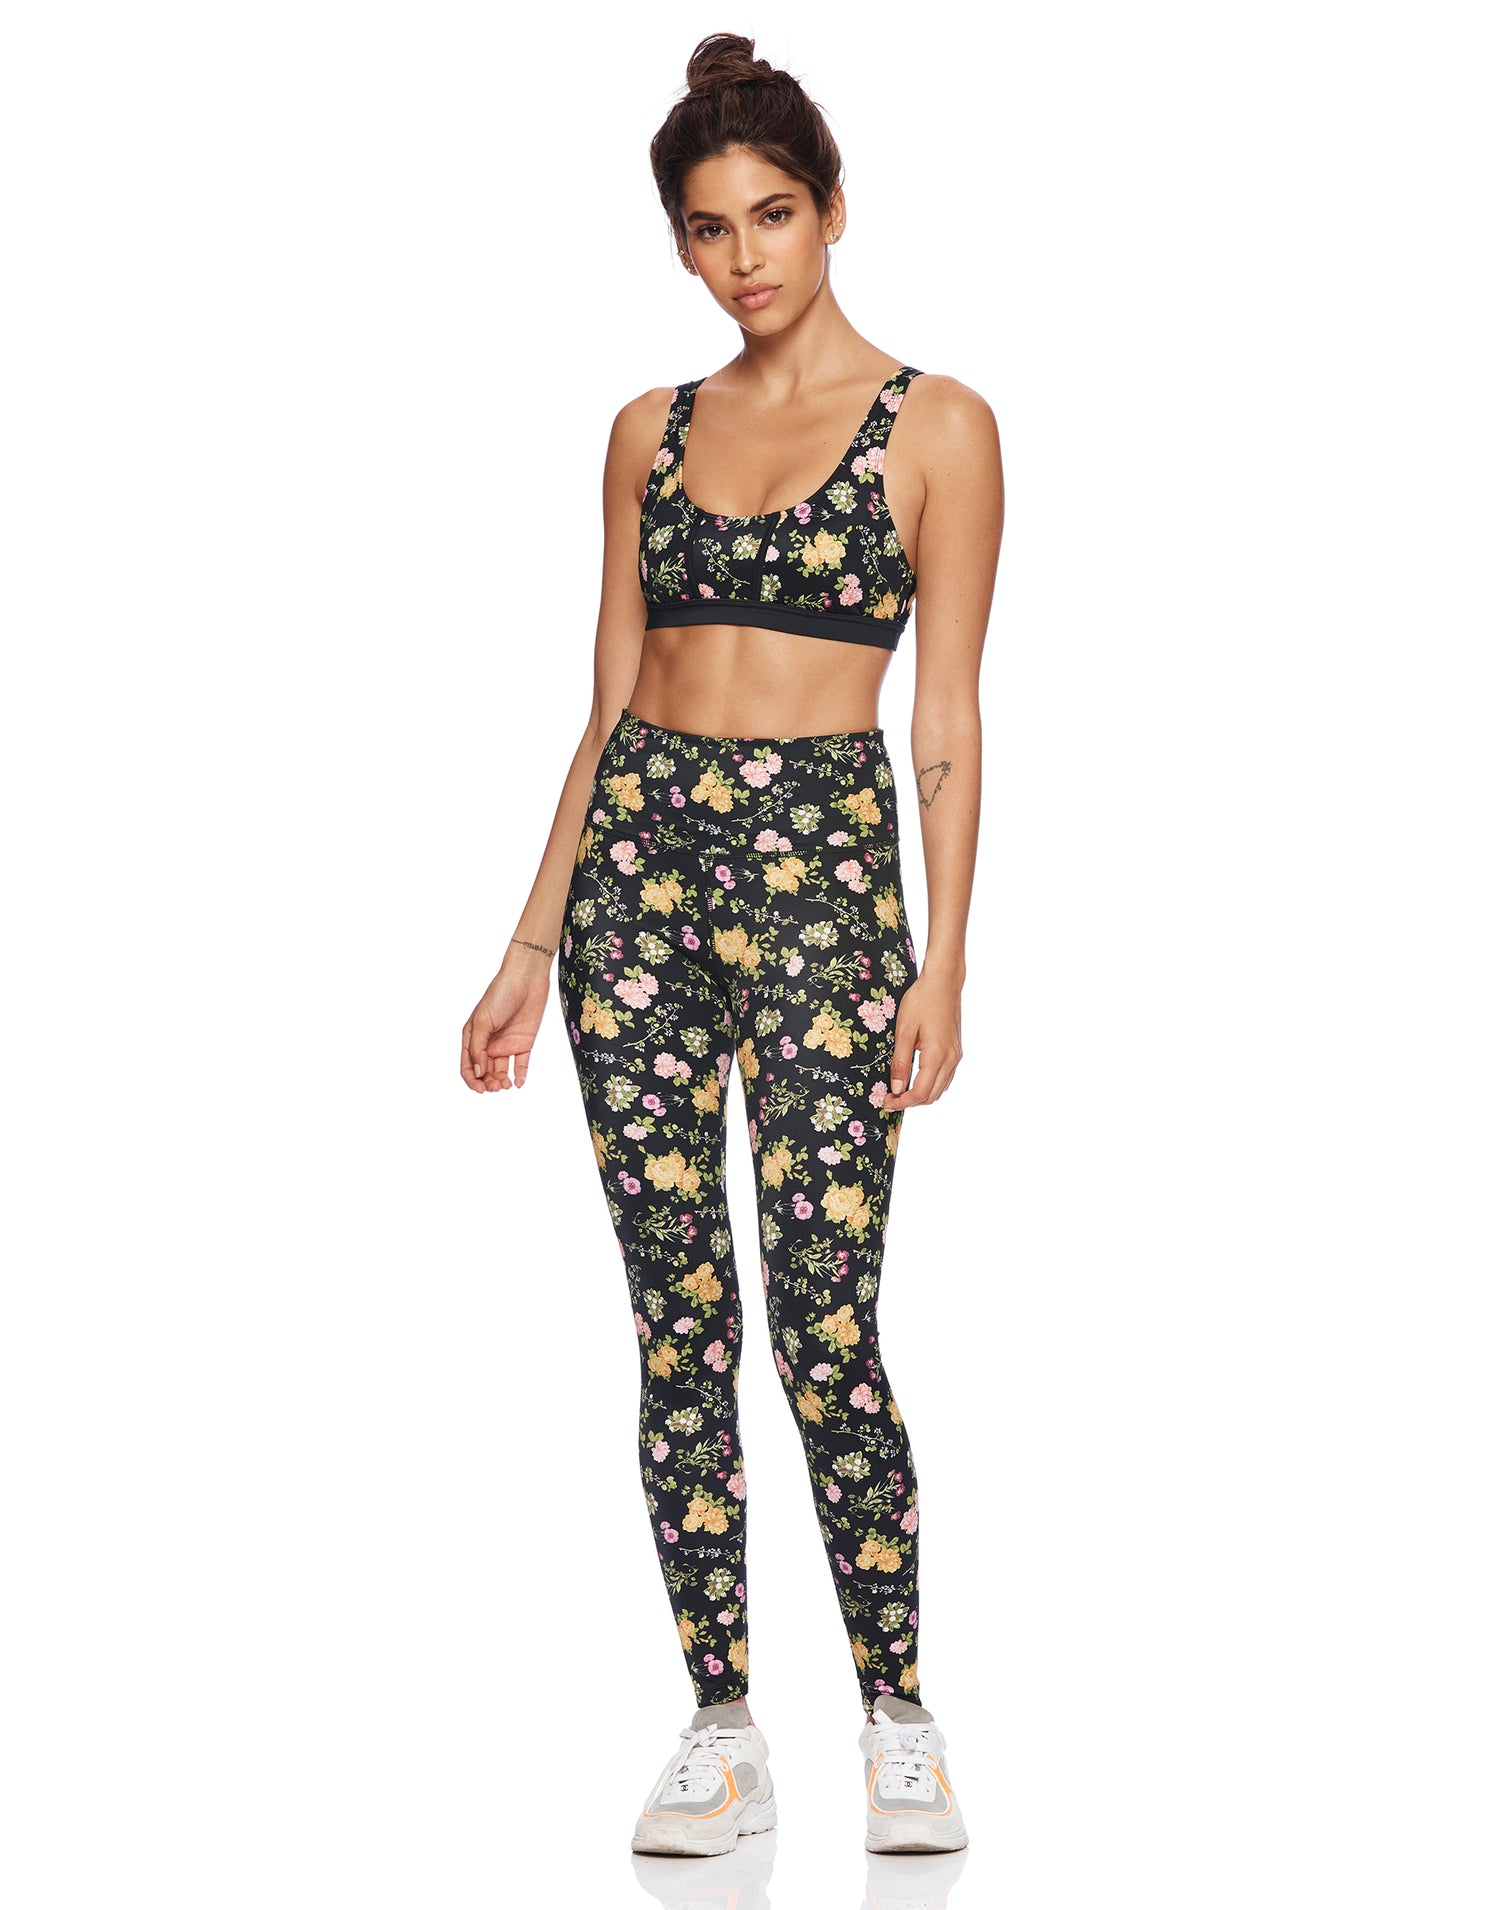 Sunny Legging in Black Floral - alternate front view